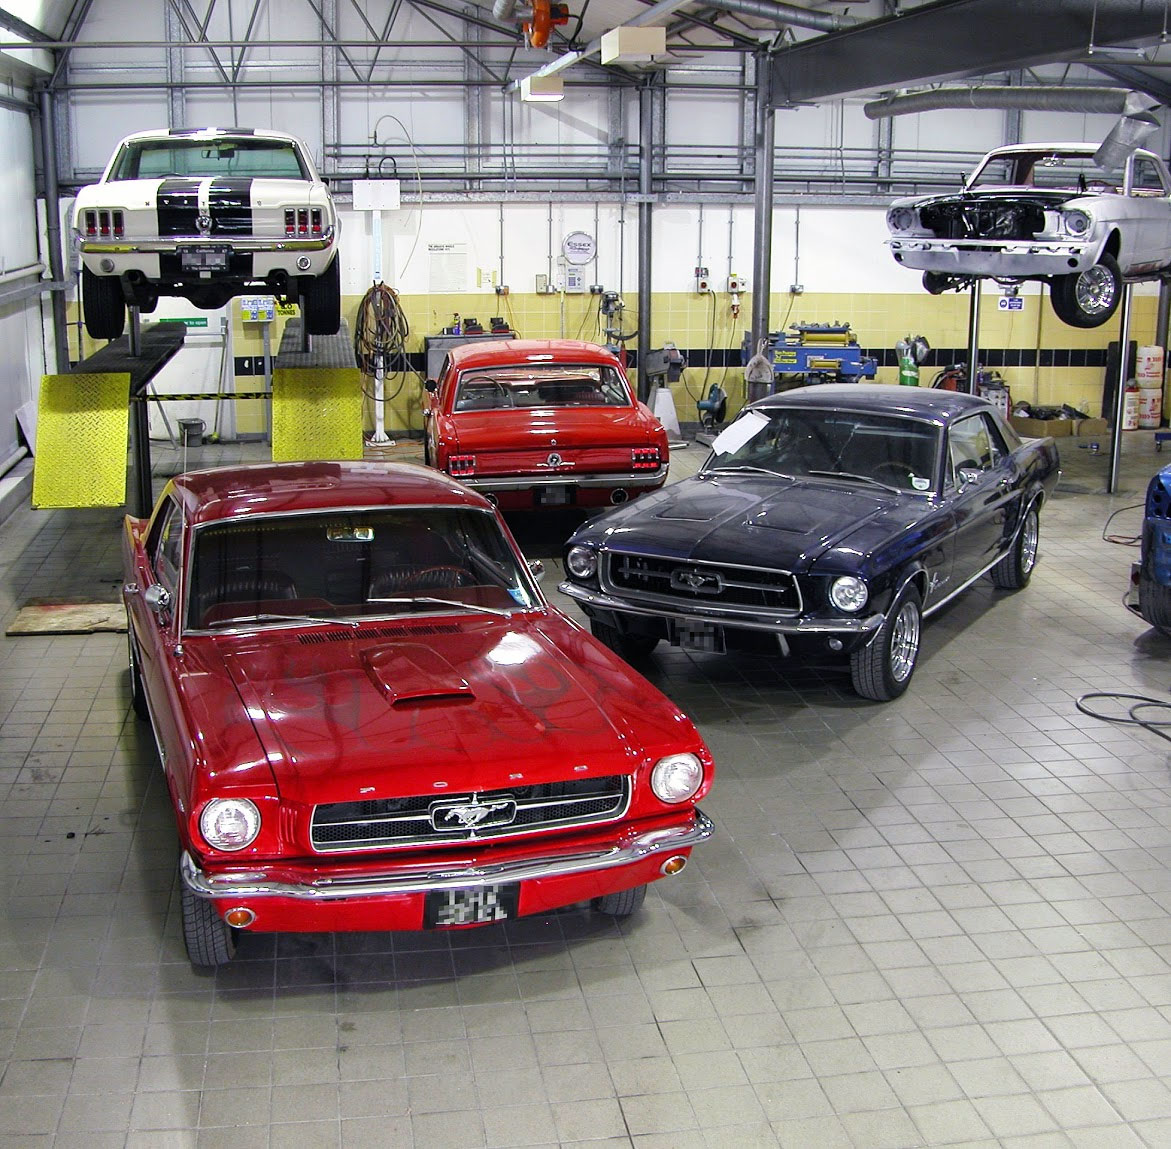 Mustang Parts For Sale >> Uk S Classic Mustang Parts Specialist Essex Mustang Centre